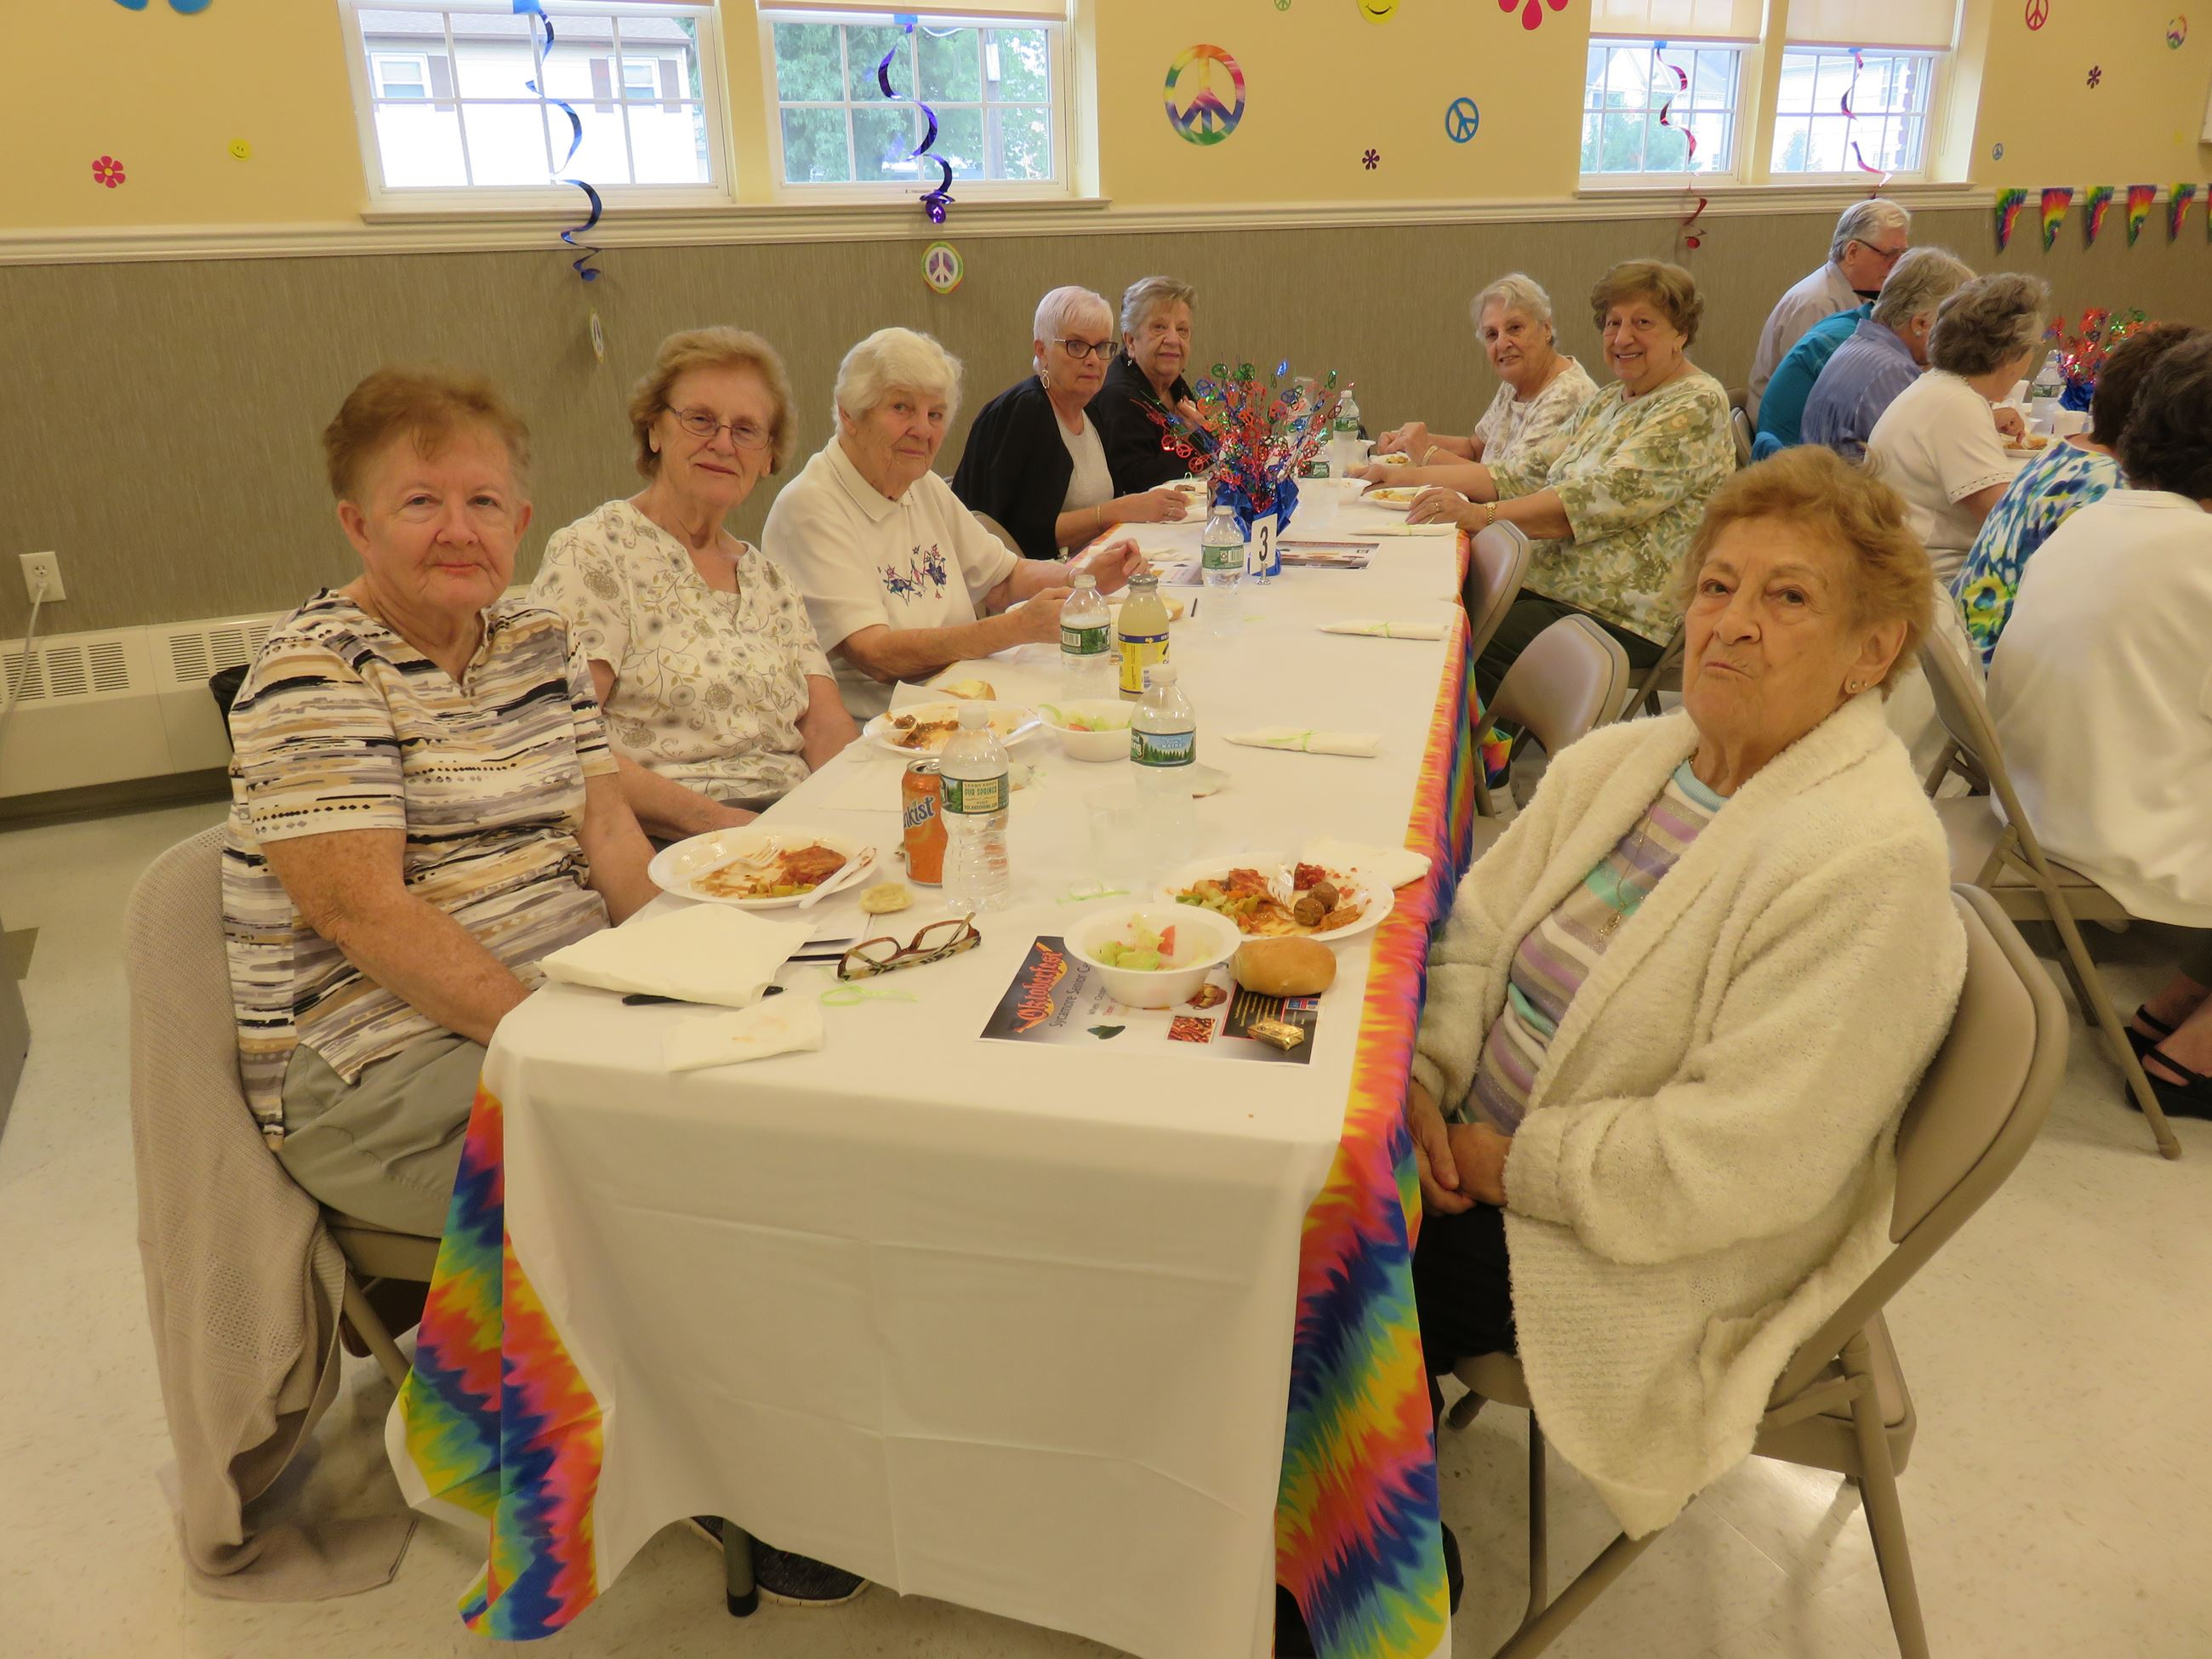 Groovy Luncheon Sycamore 9-12-18 004